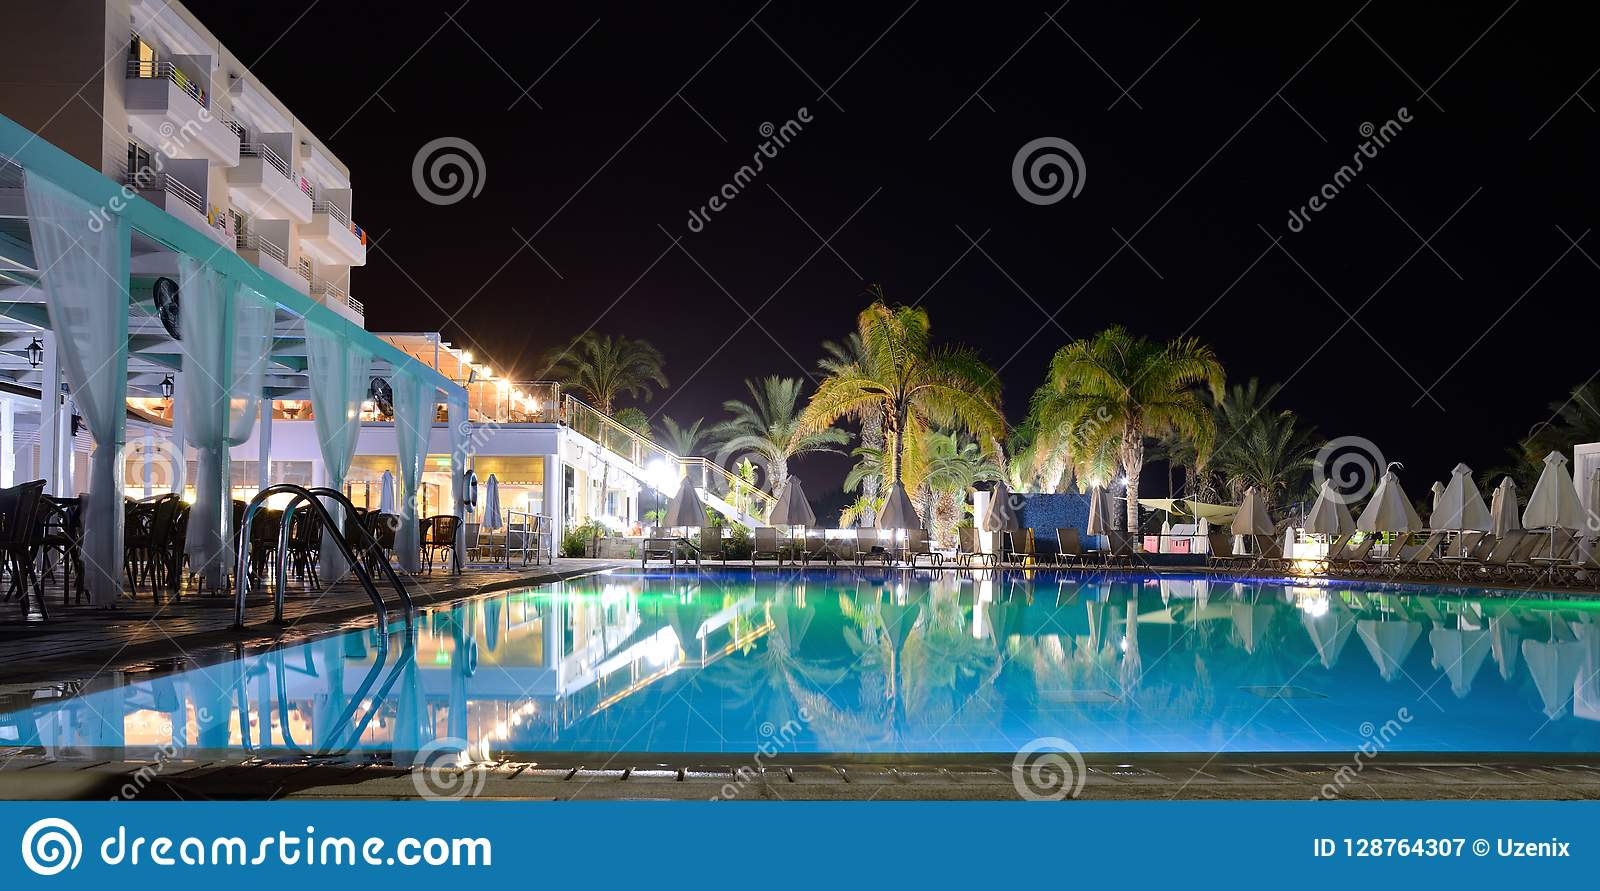 Pool in the resort at hotel in night-time with illumination